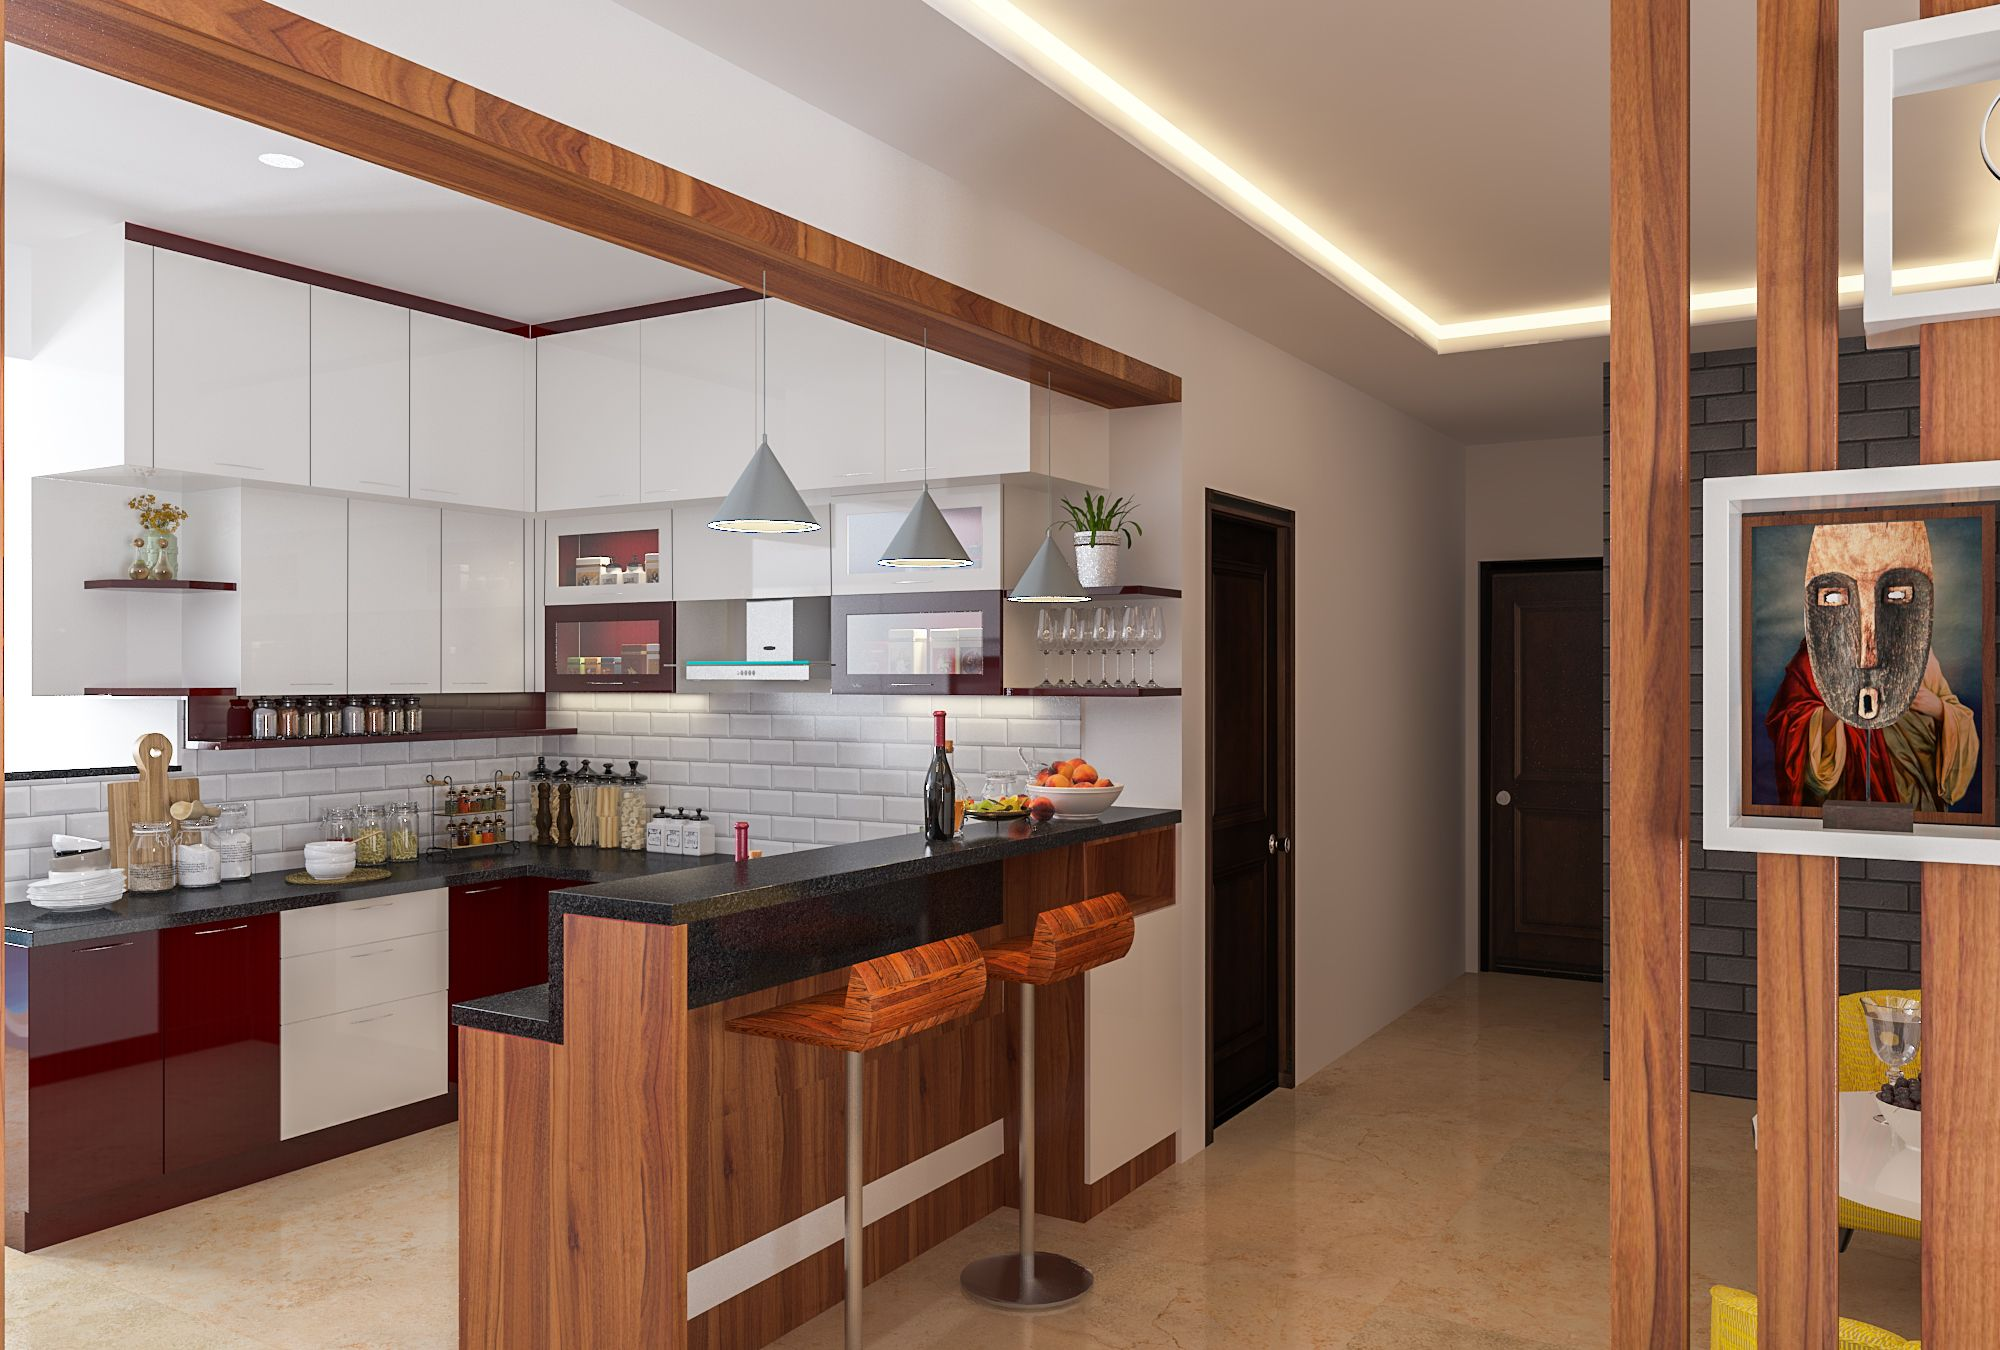 Kitchen with breakfast counter | Dining table in kitchen, Kitchen